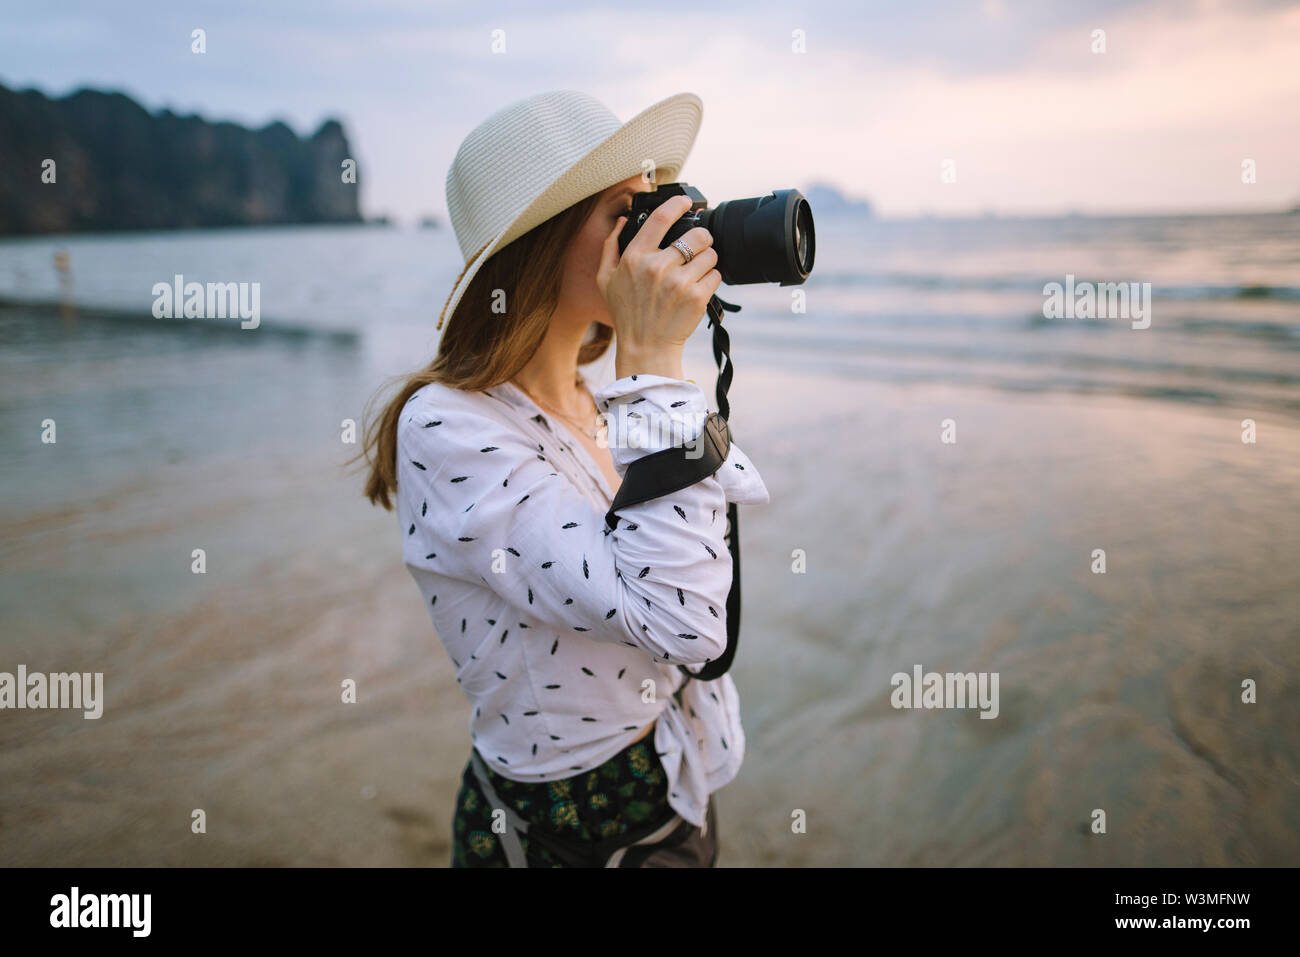 Young woman photographing on beach in Krabi, Thailand - Stock Image